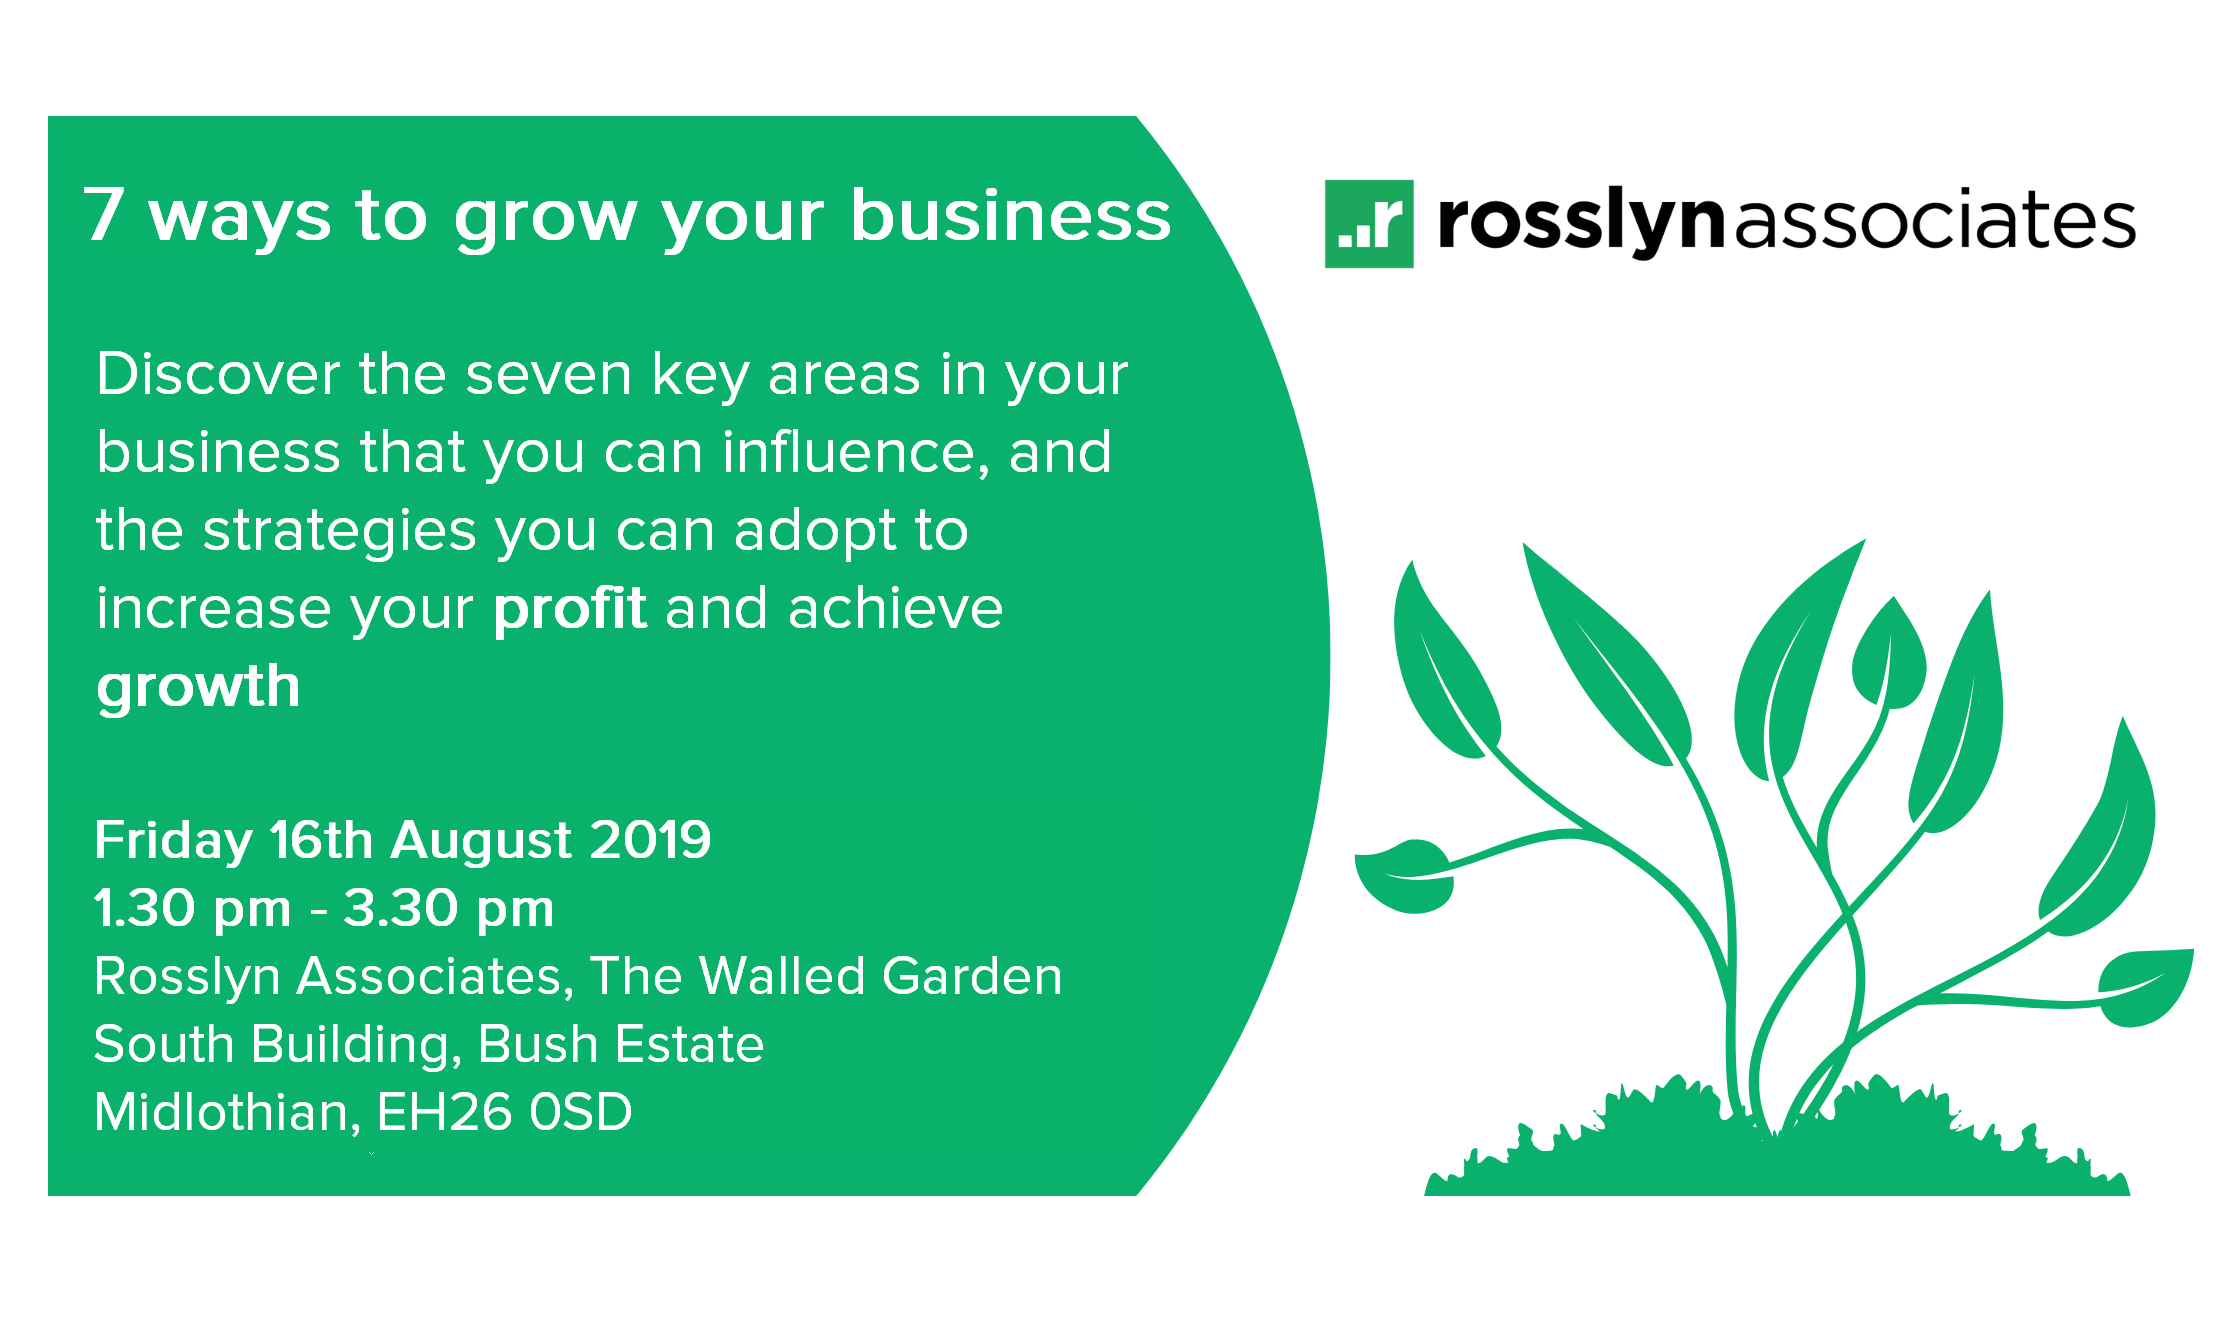 SEMINAR: 7 Ways To Grow Your Business